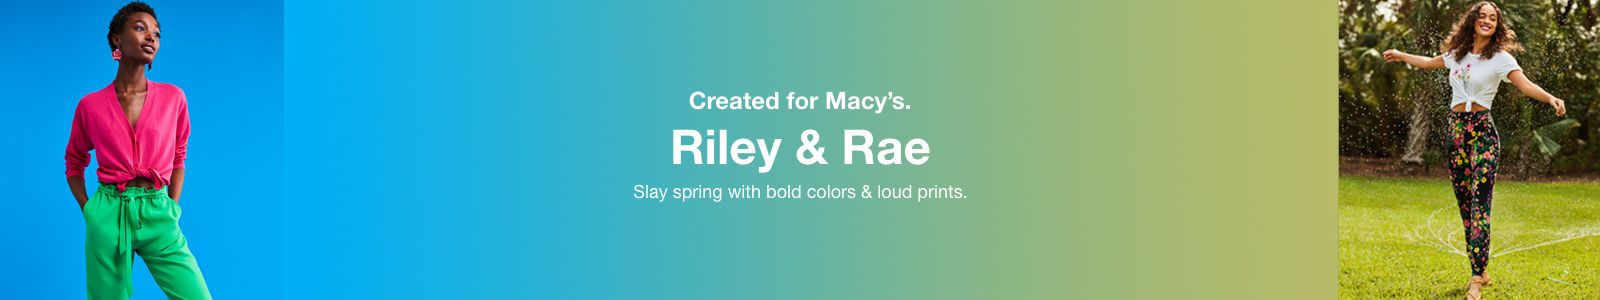 Created for Macy's, Riley and Rae, Slay spring with bold colors and loud prints